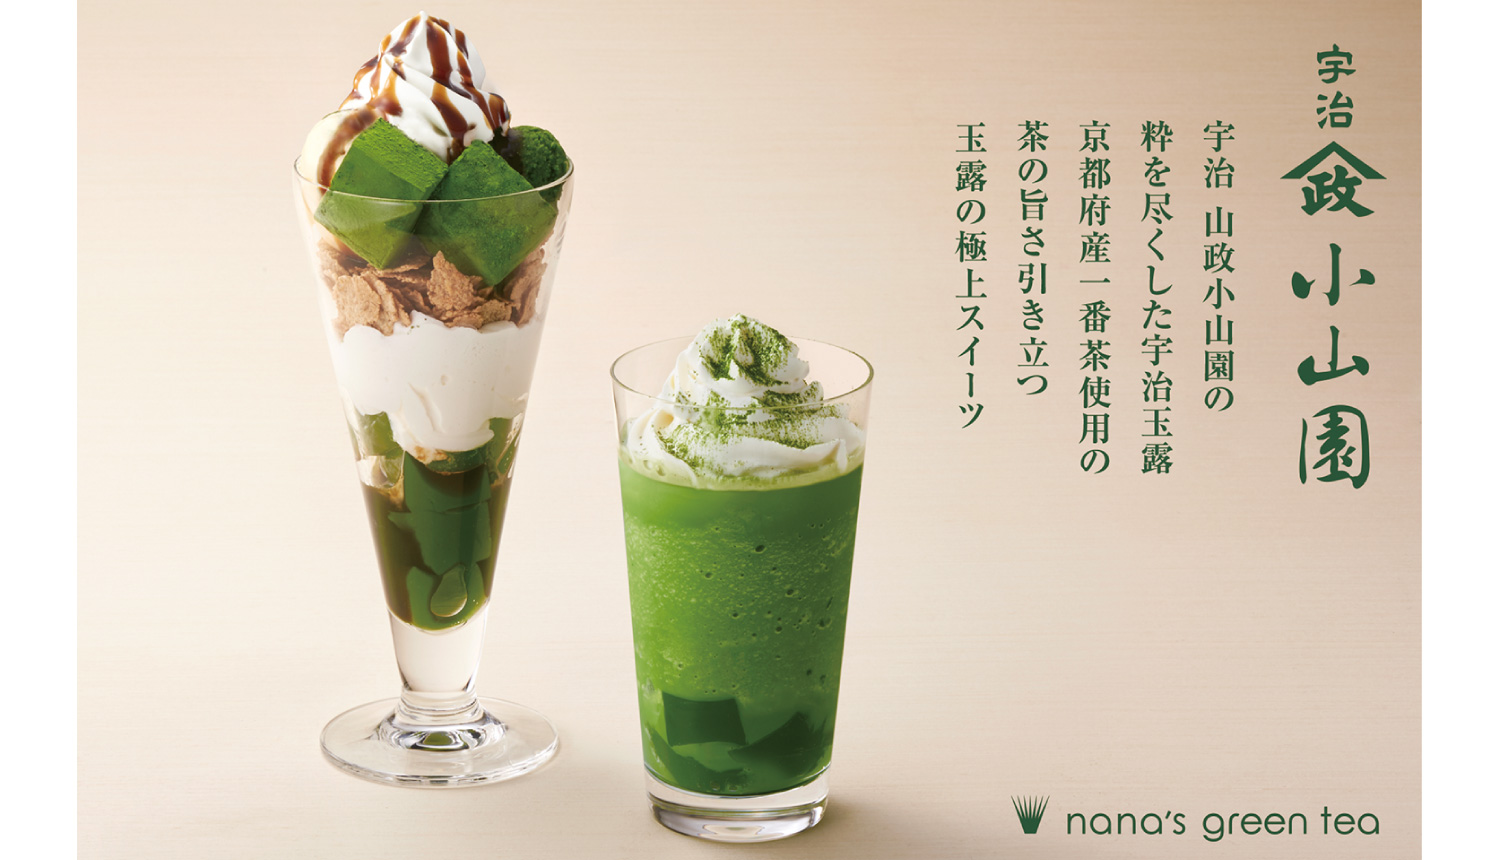 nana's-green-tea-dessert-和スイーツ-甜點___